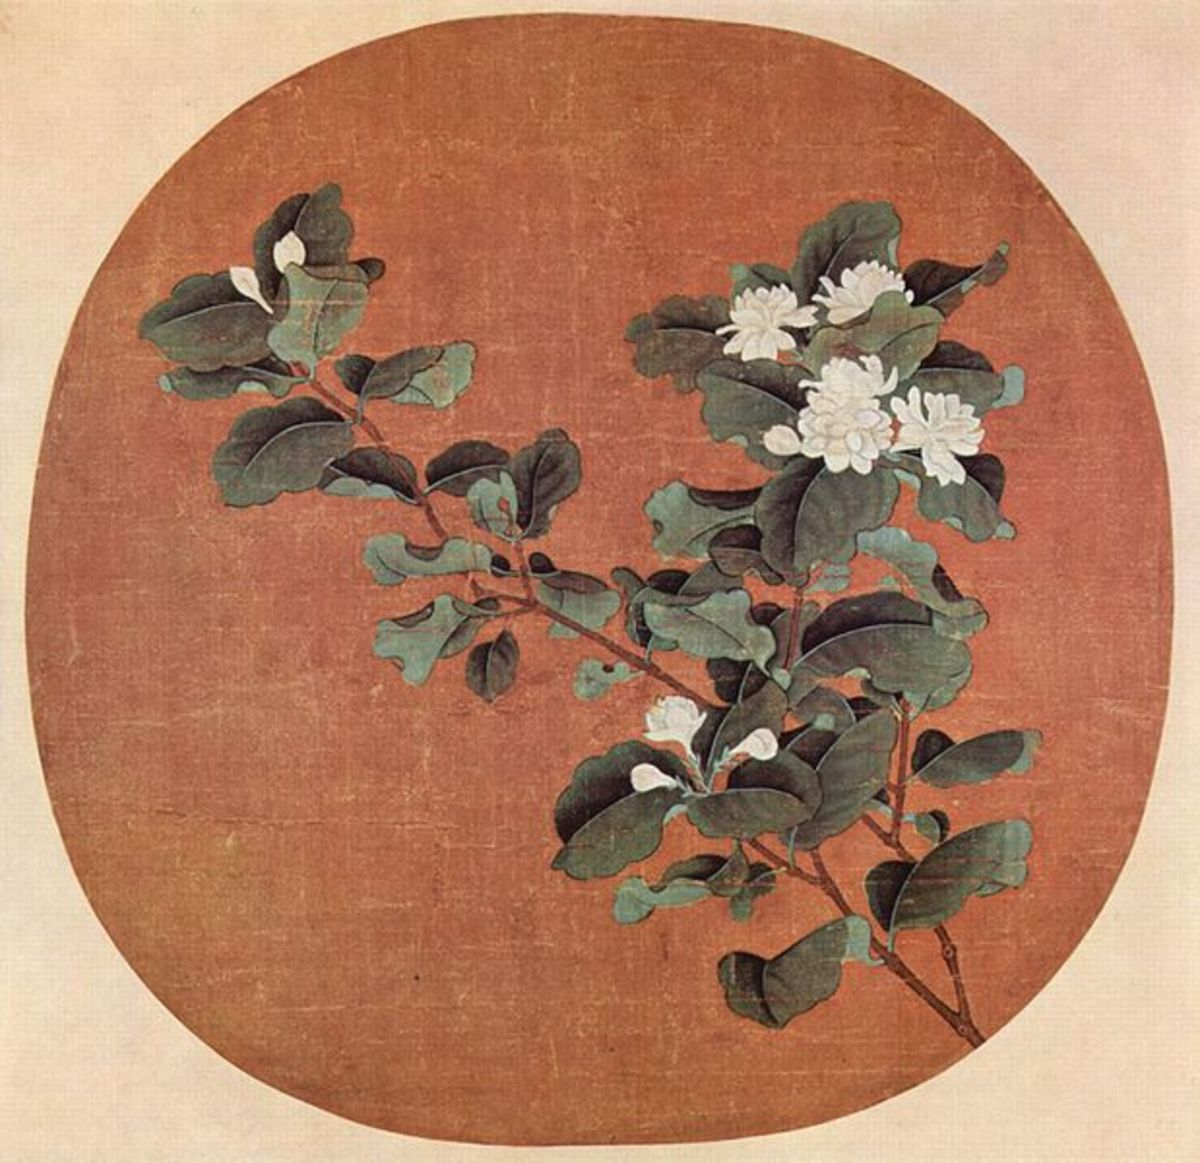 Chinese painting on silk from the early 12th century, showing jasmine flowers in bloom.